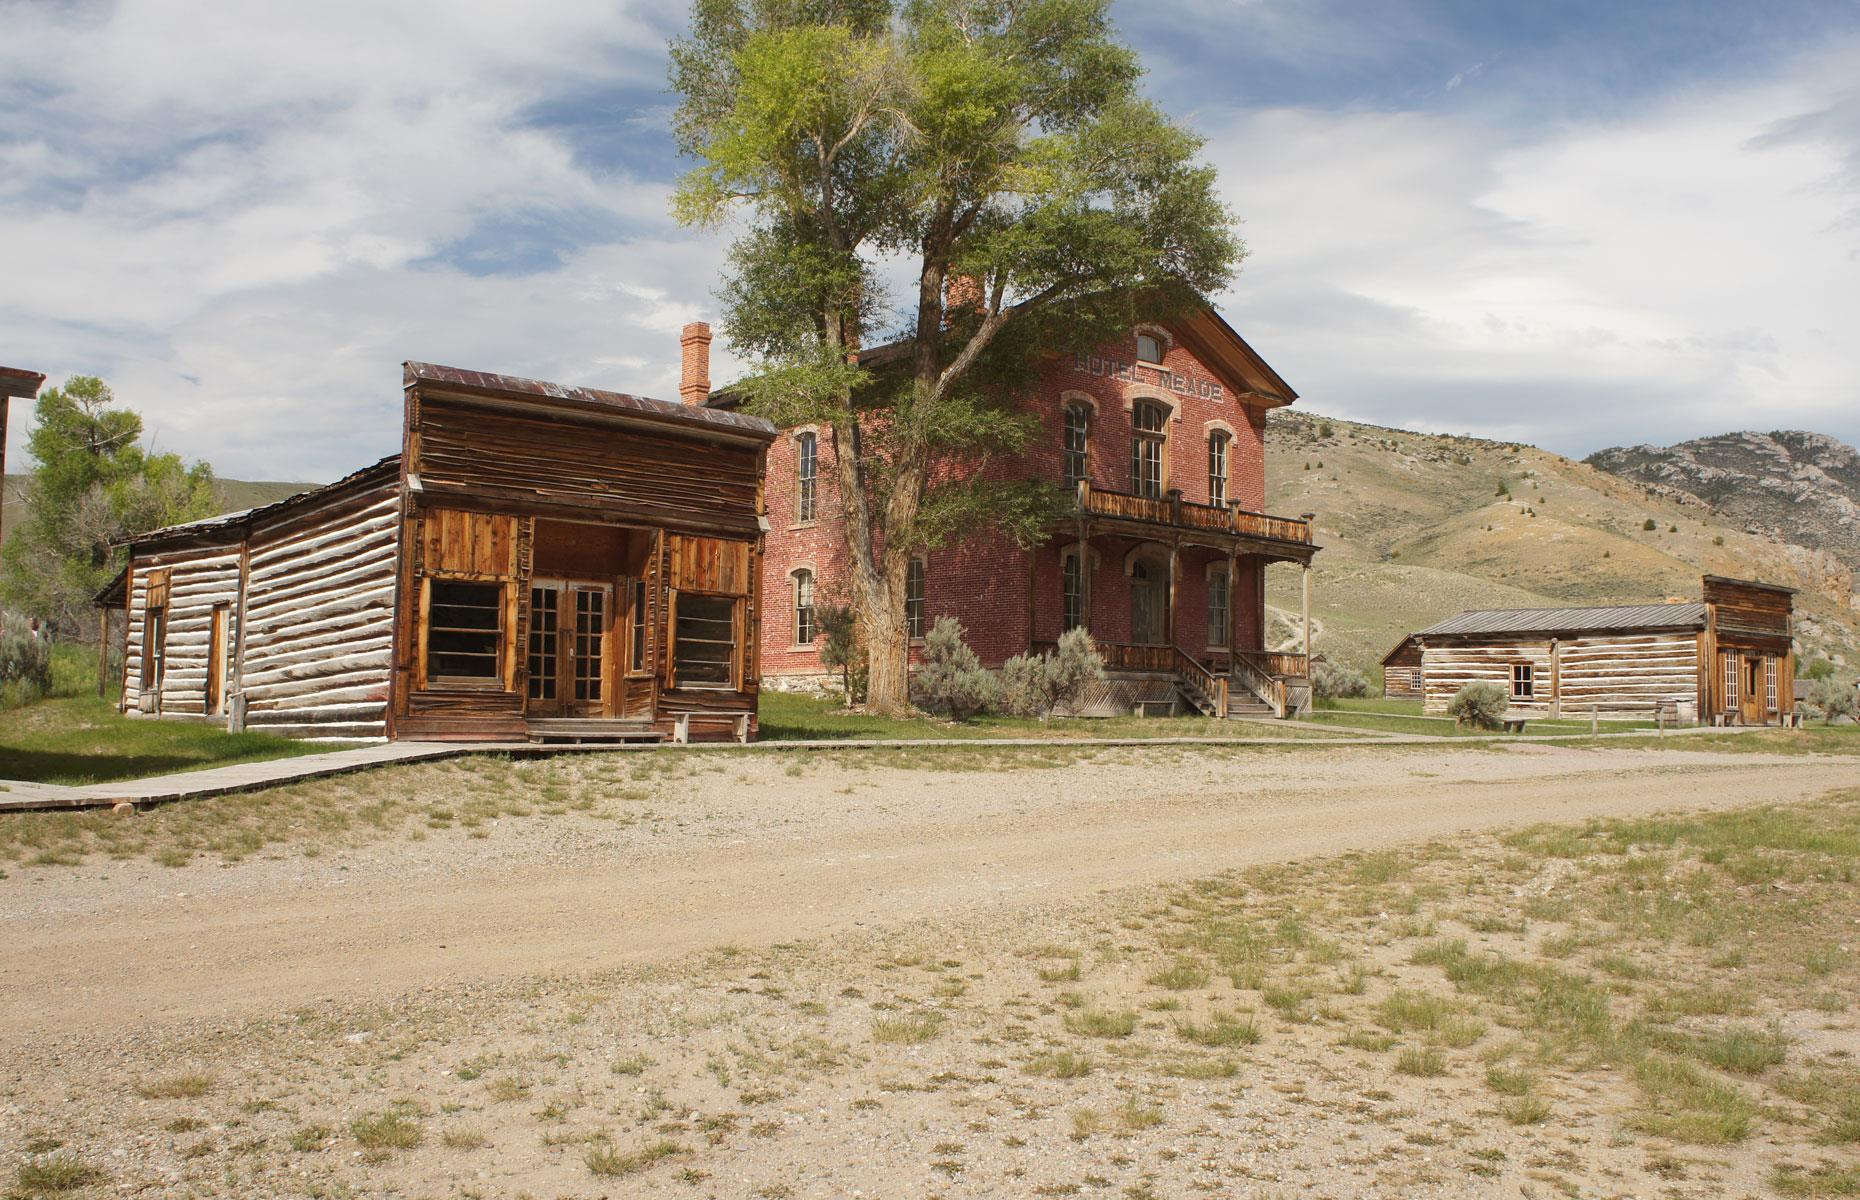 Slide 52 of 101: One of America's most emblematic ghost towns, Bannack was founded in 1862. The mining town served as the Montana capital until 1864 and had a population of 10,000 at its peak in the latter half of the 19th century.